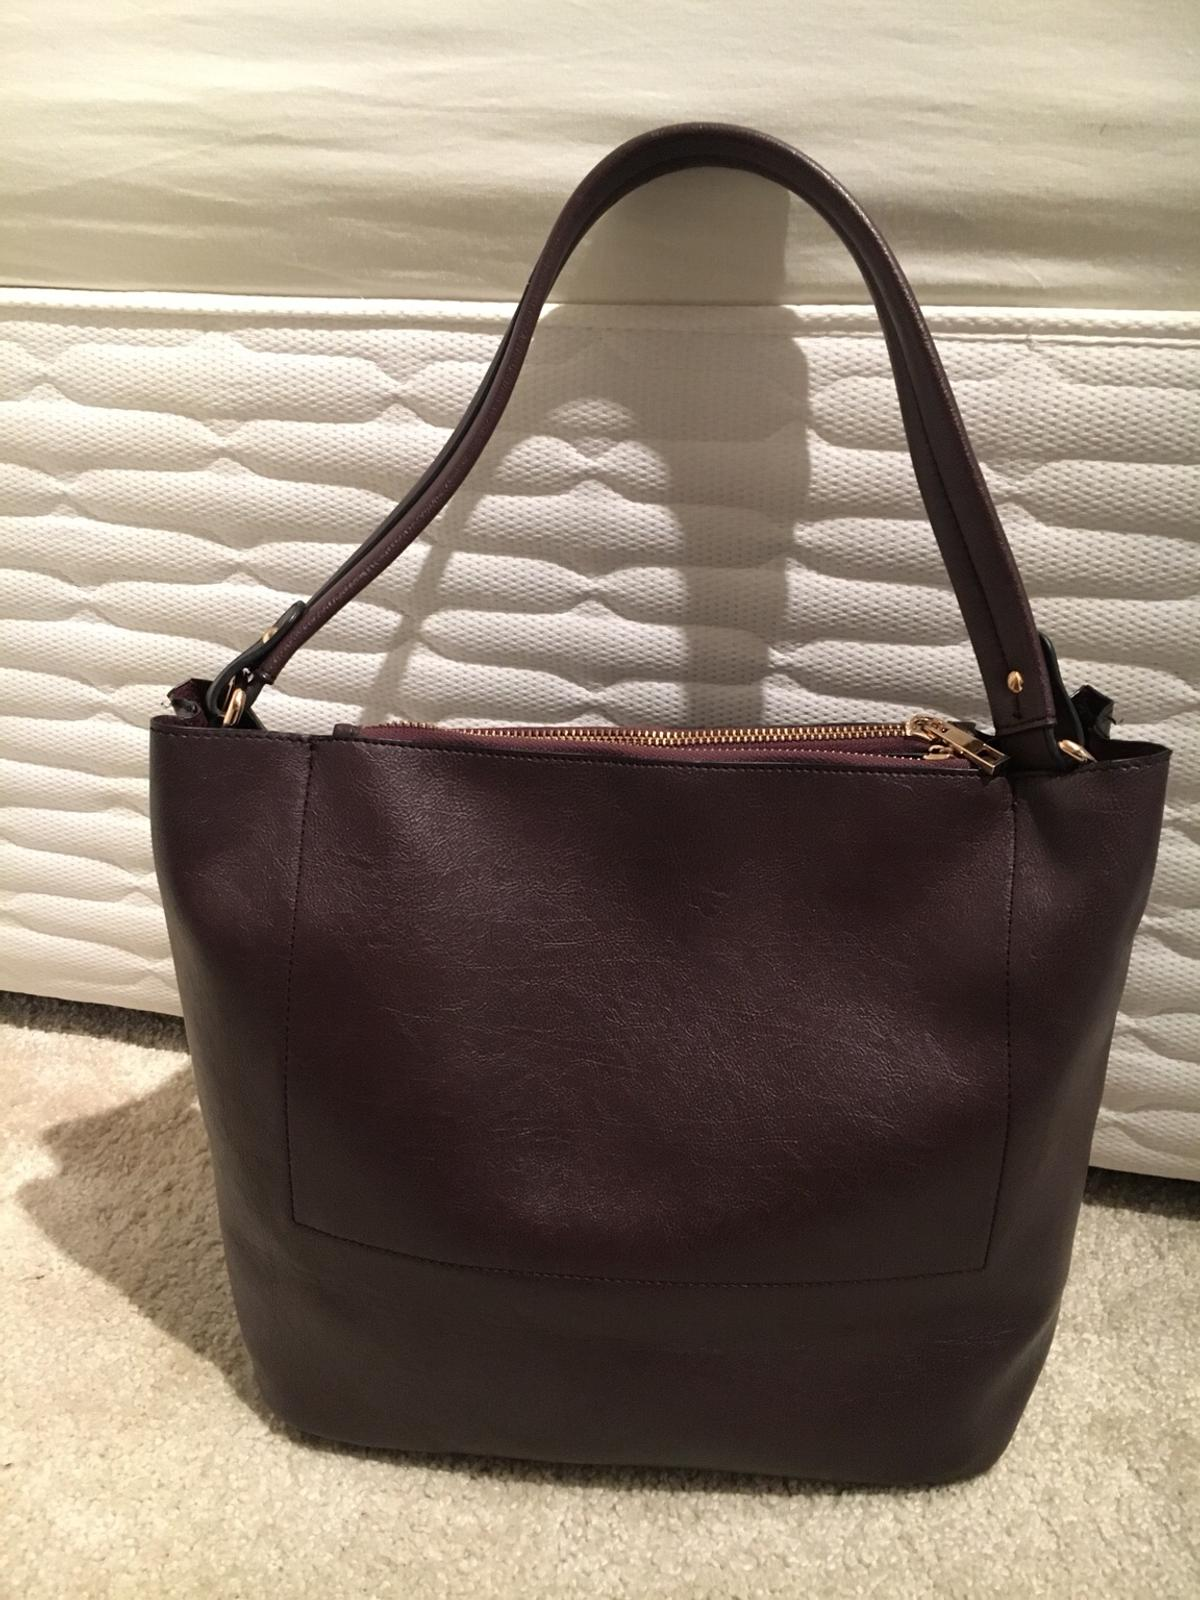 bbb6c6b0731f REDUCED - Oasis Brown Handbag in DY5 Dudley for £18.00 for sale - Shpock